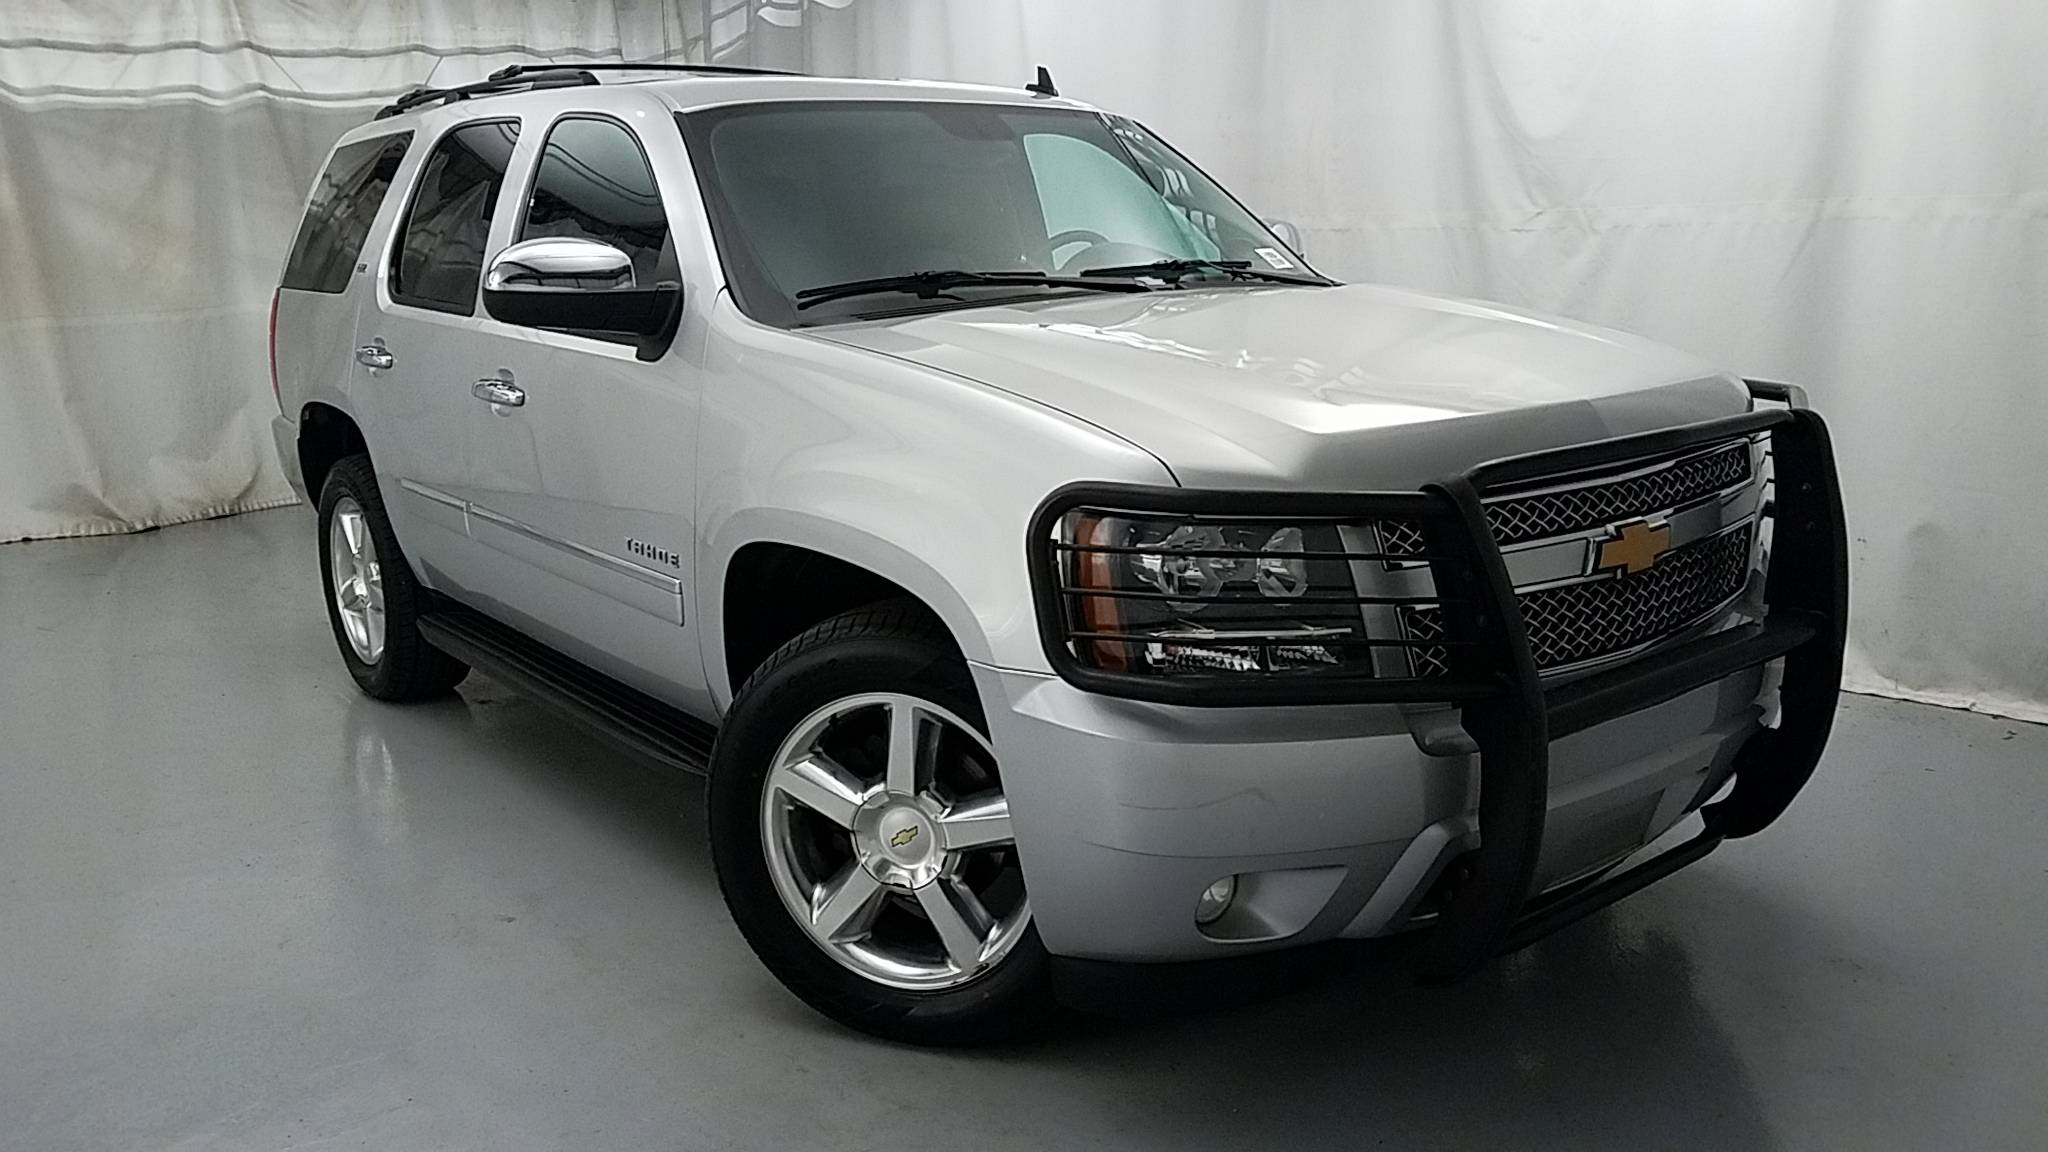 used Chevrolet Tahoe at Ross Downing Used Cars in Hammond and Gonzales